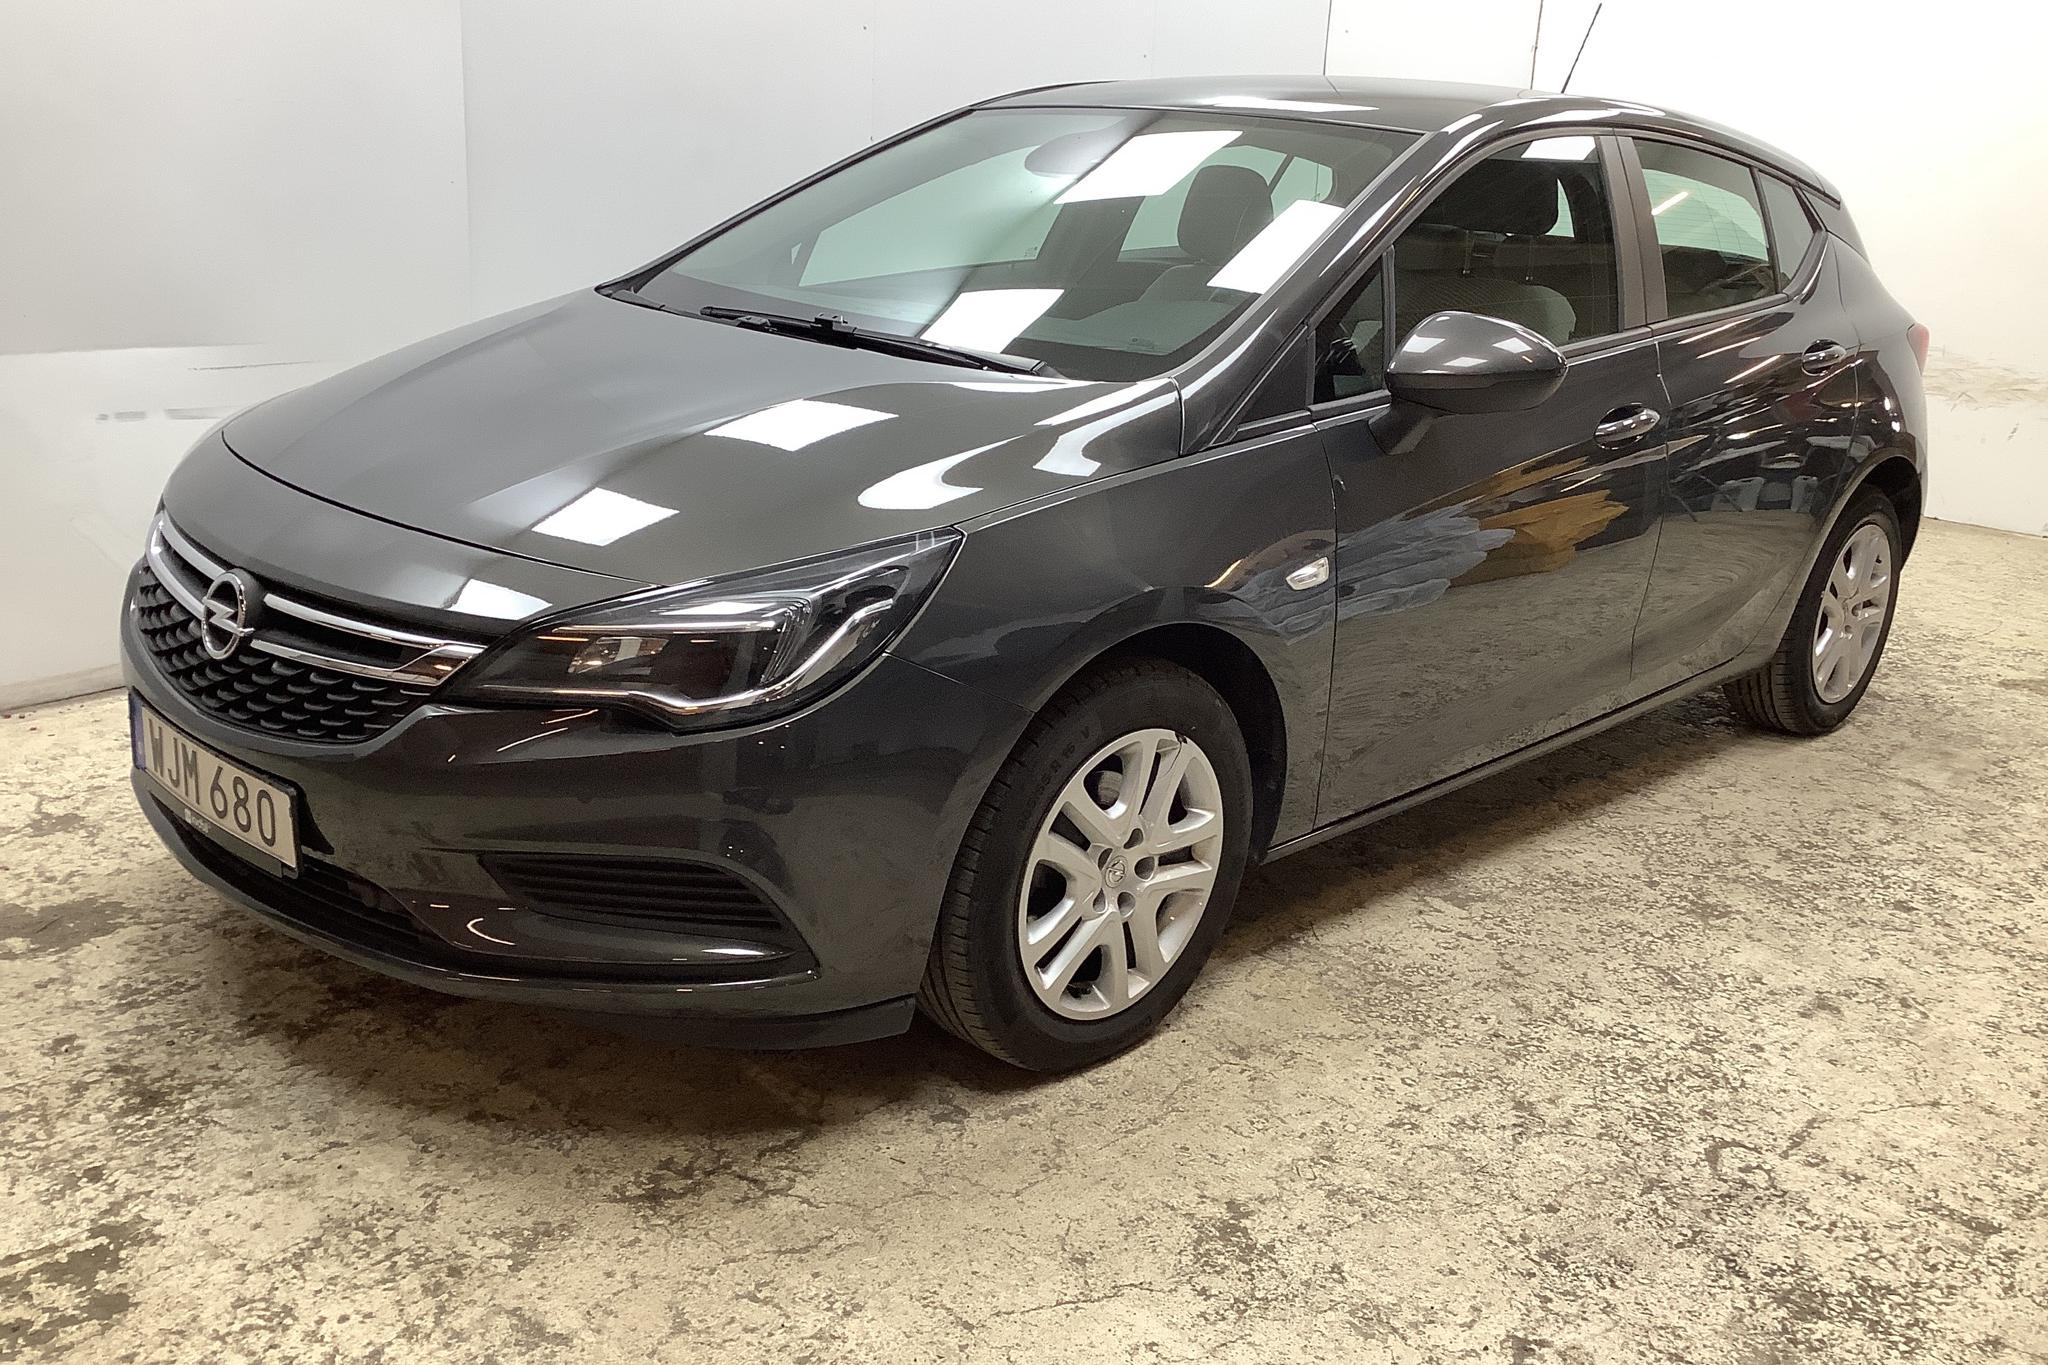 Opel Astra 1.0 Turbo ECOTEC 5dr (105hk) - 43 070 km - Manual - gray - 2016